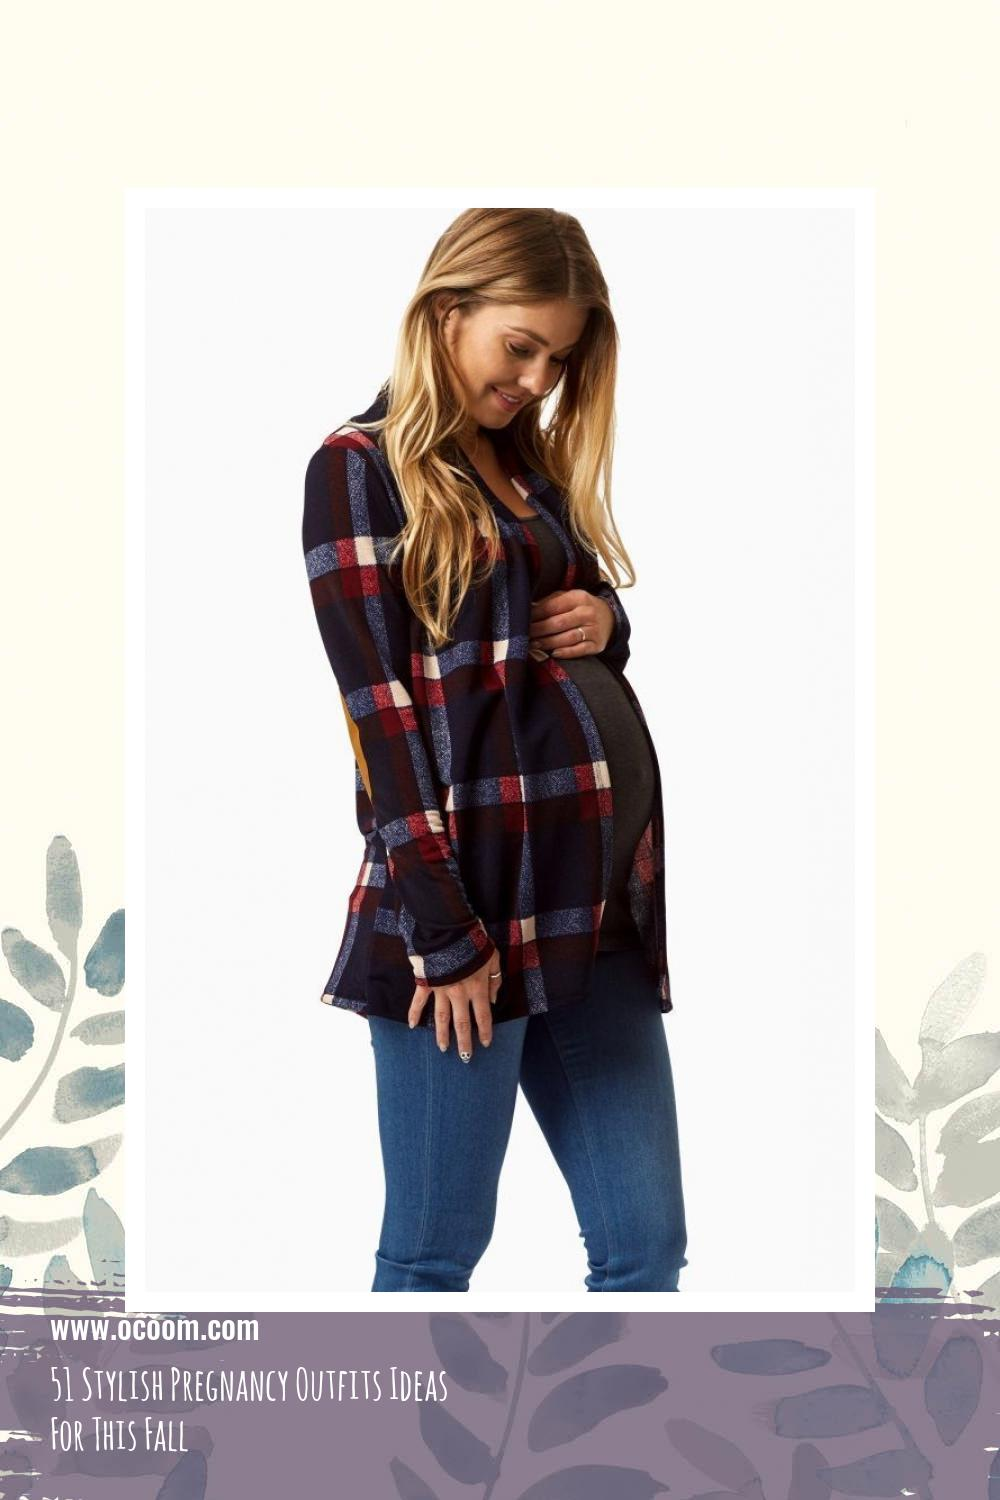 51 Stylish Pregnancy Outfits Ideas For This Fall 44